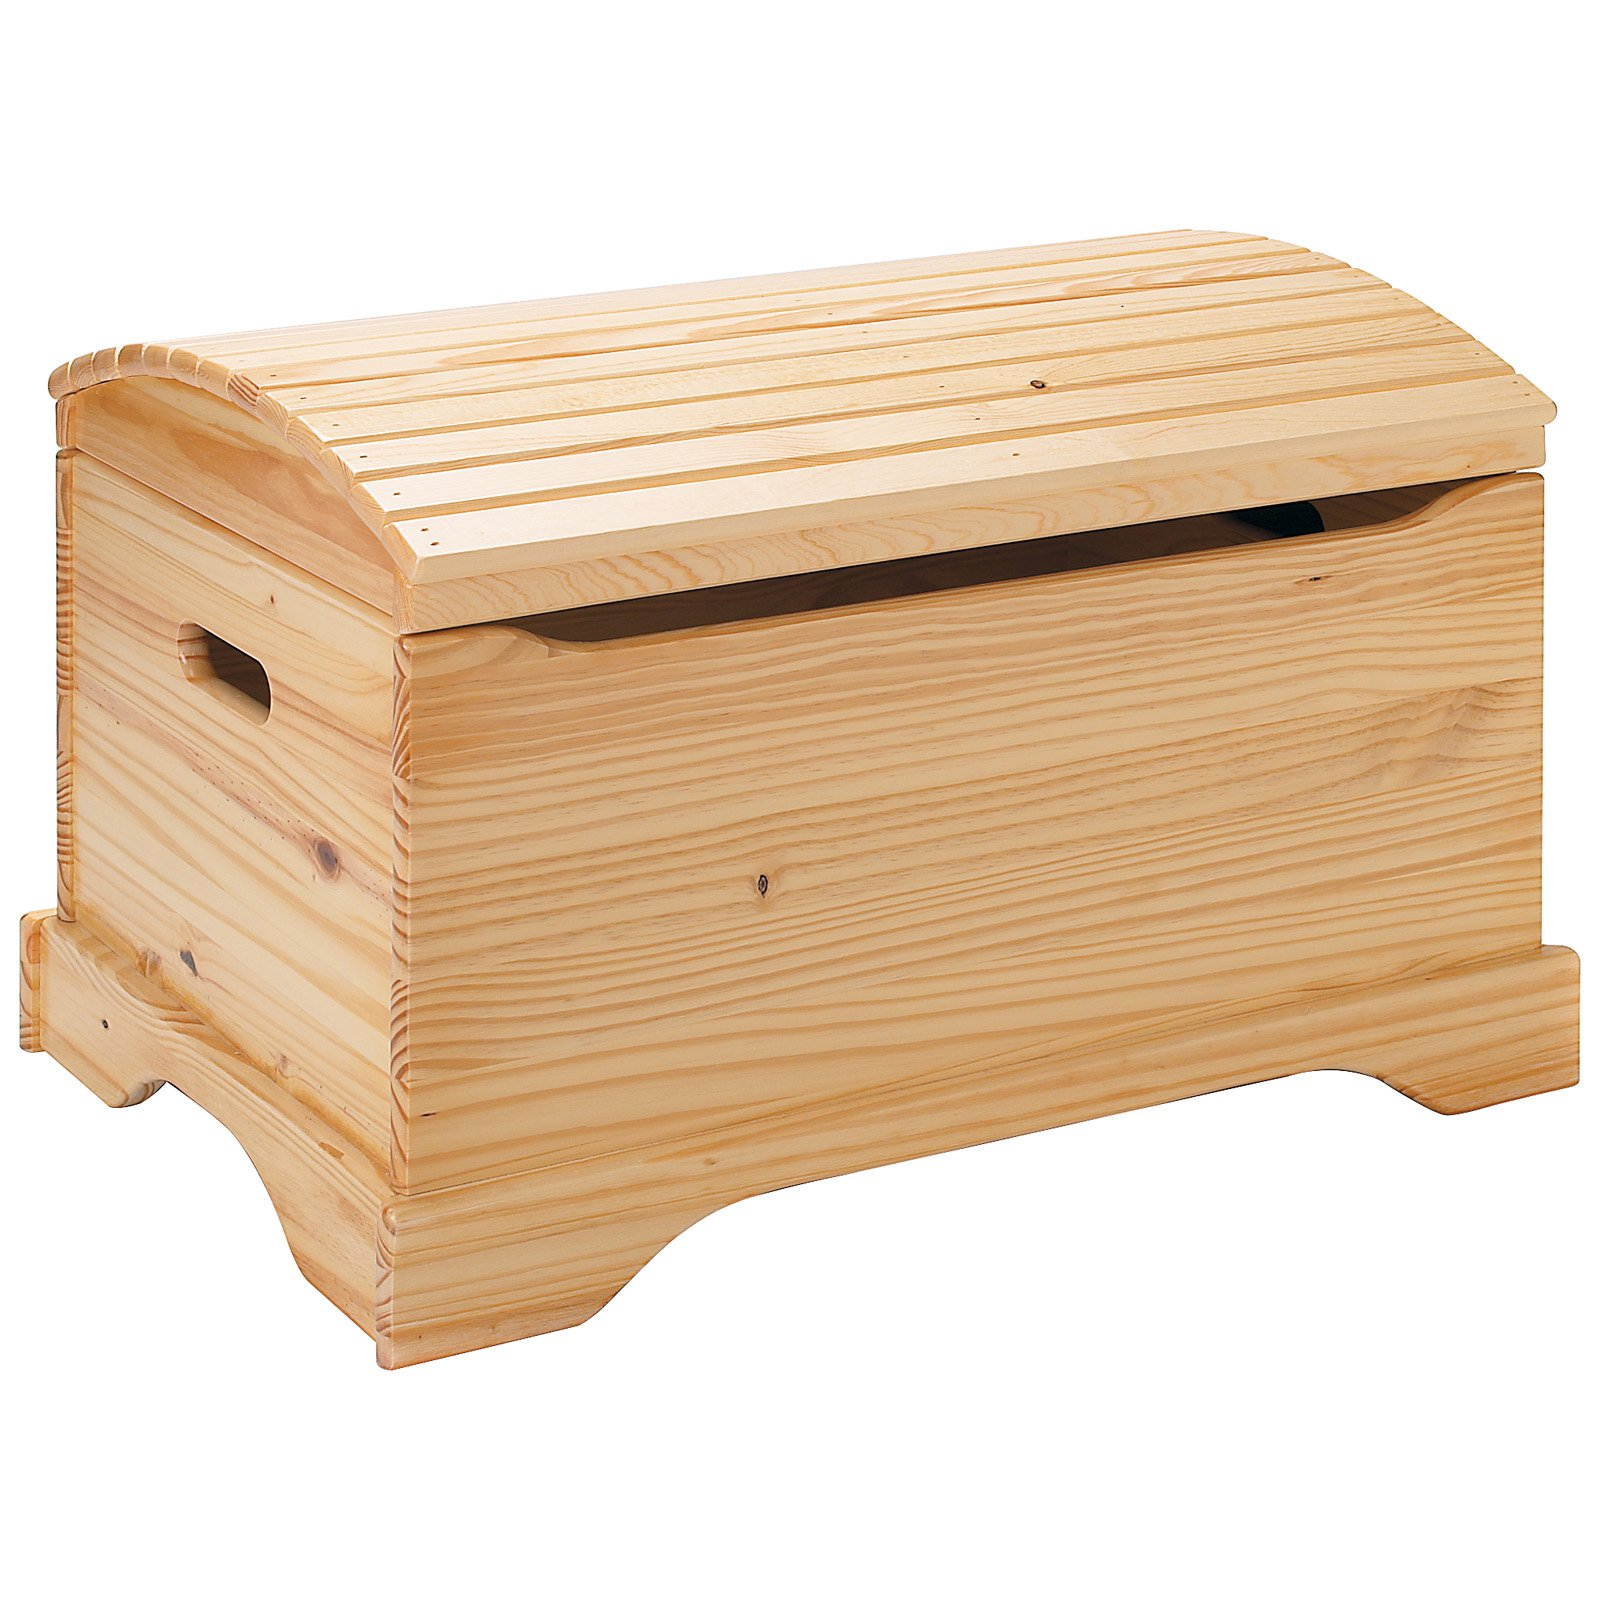 Little Colorado Handcrafted Captains Toy Chest